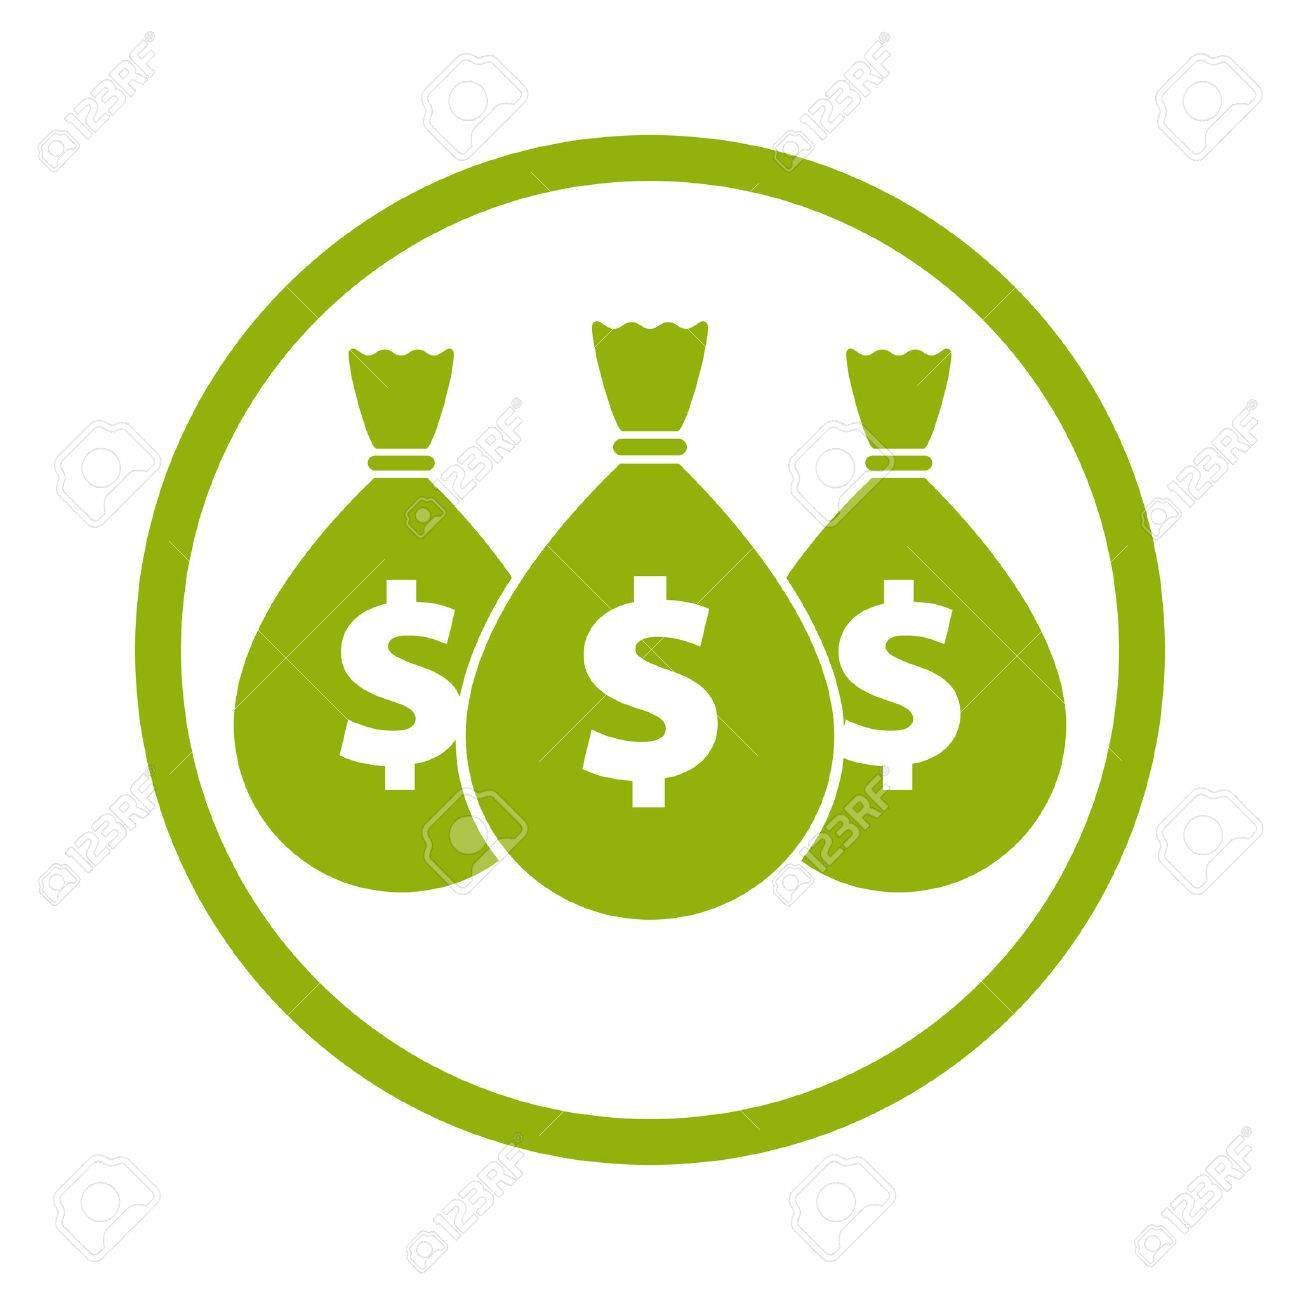 Money icon with three bags, vector. Stock Vector - 32659531